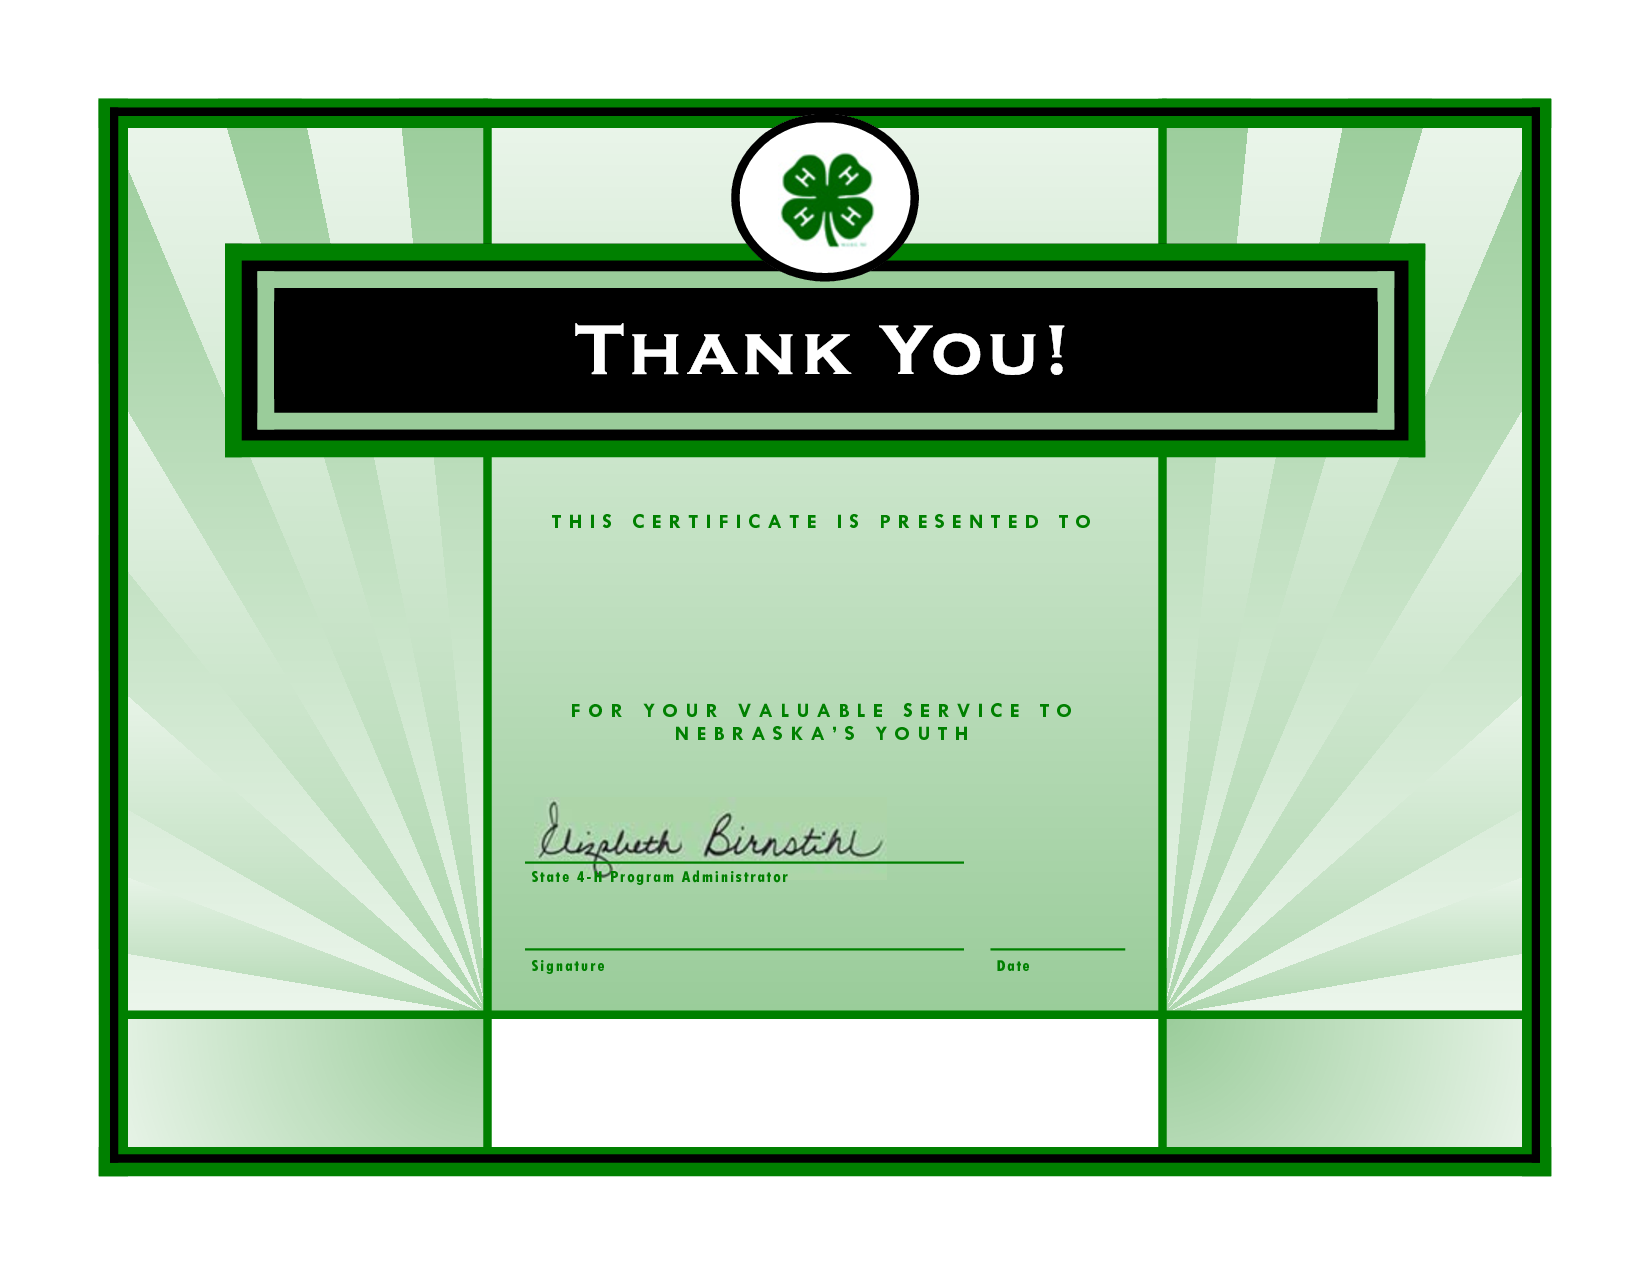 printable thanks you for volunteer certificate – Thank You Certificate Template